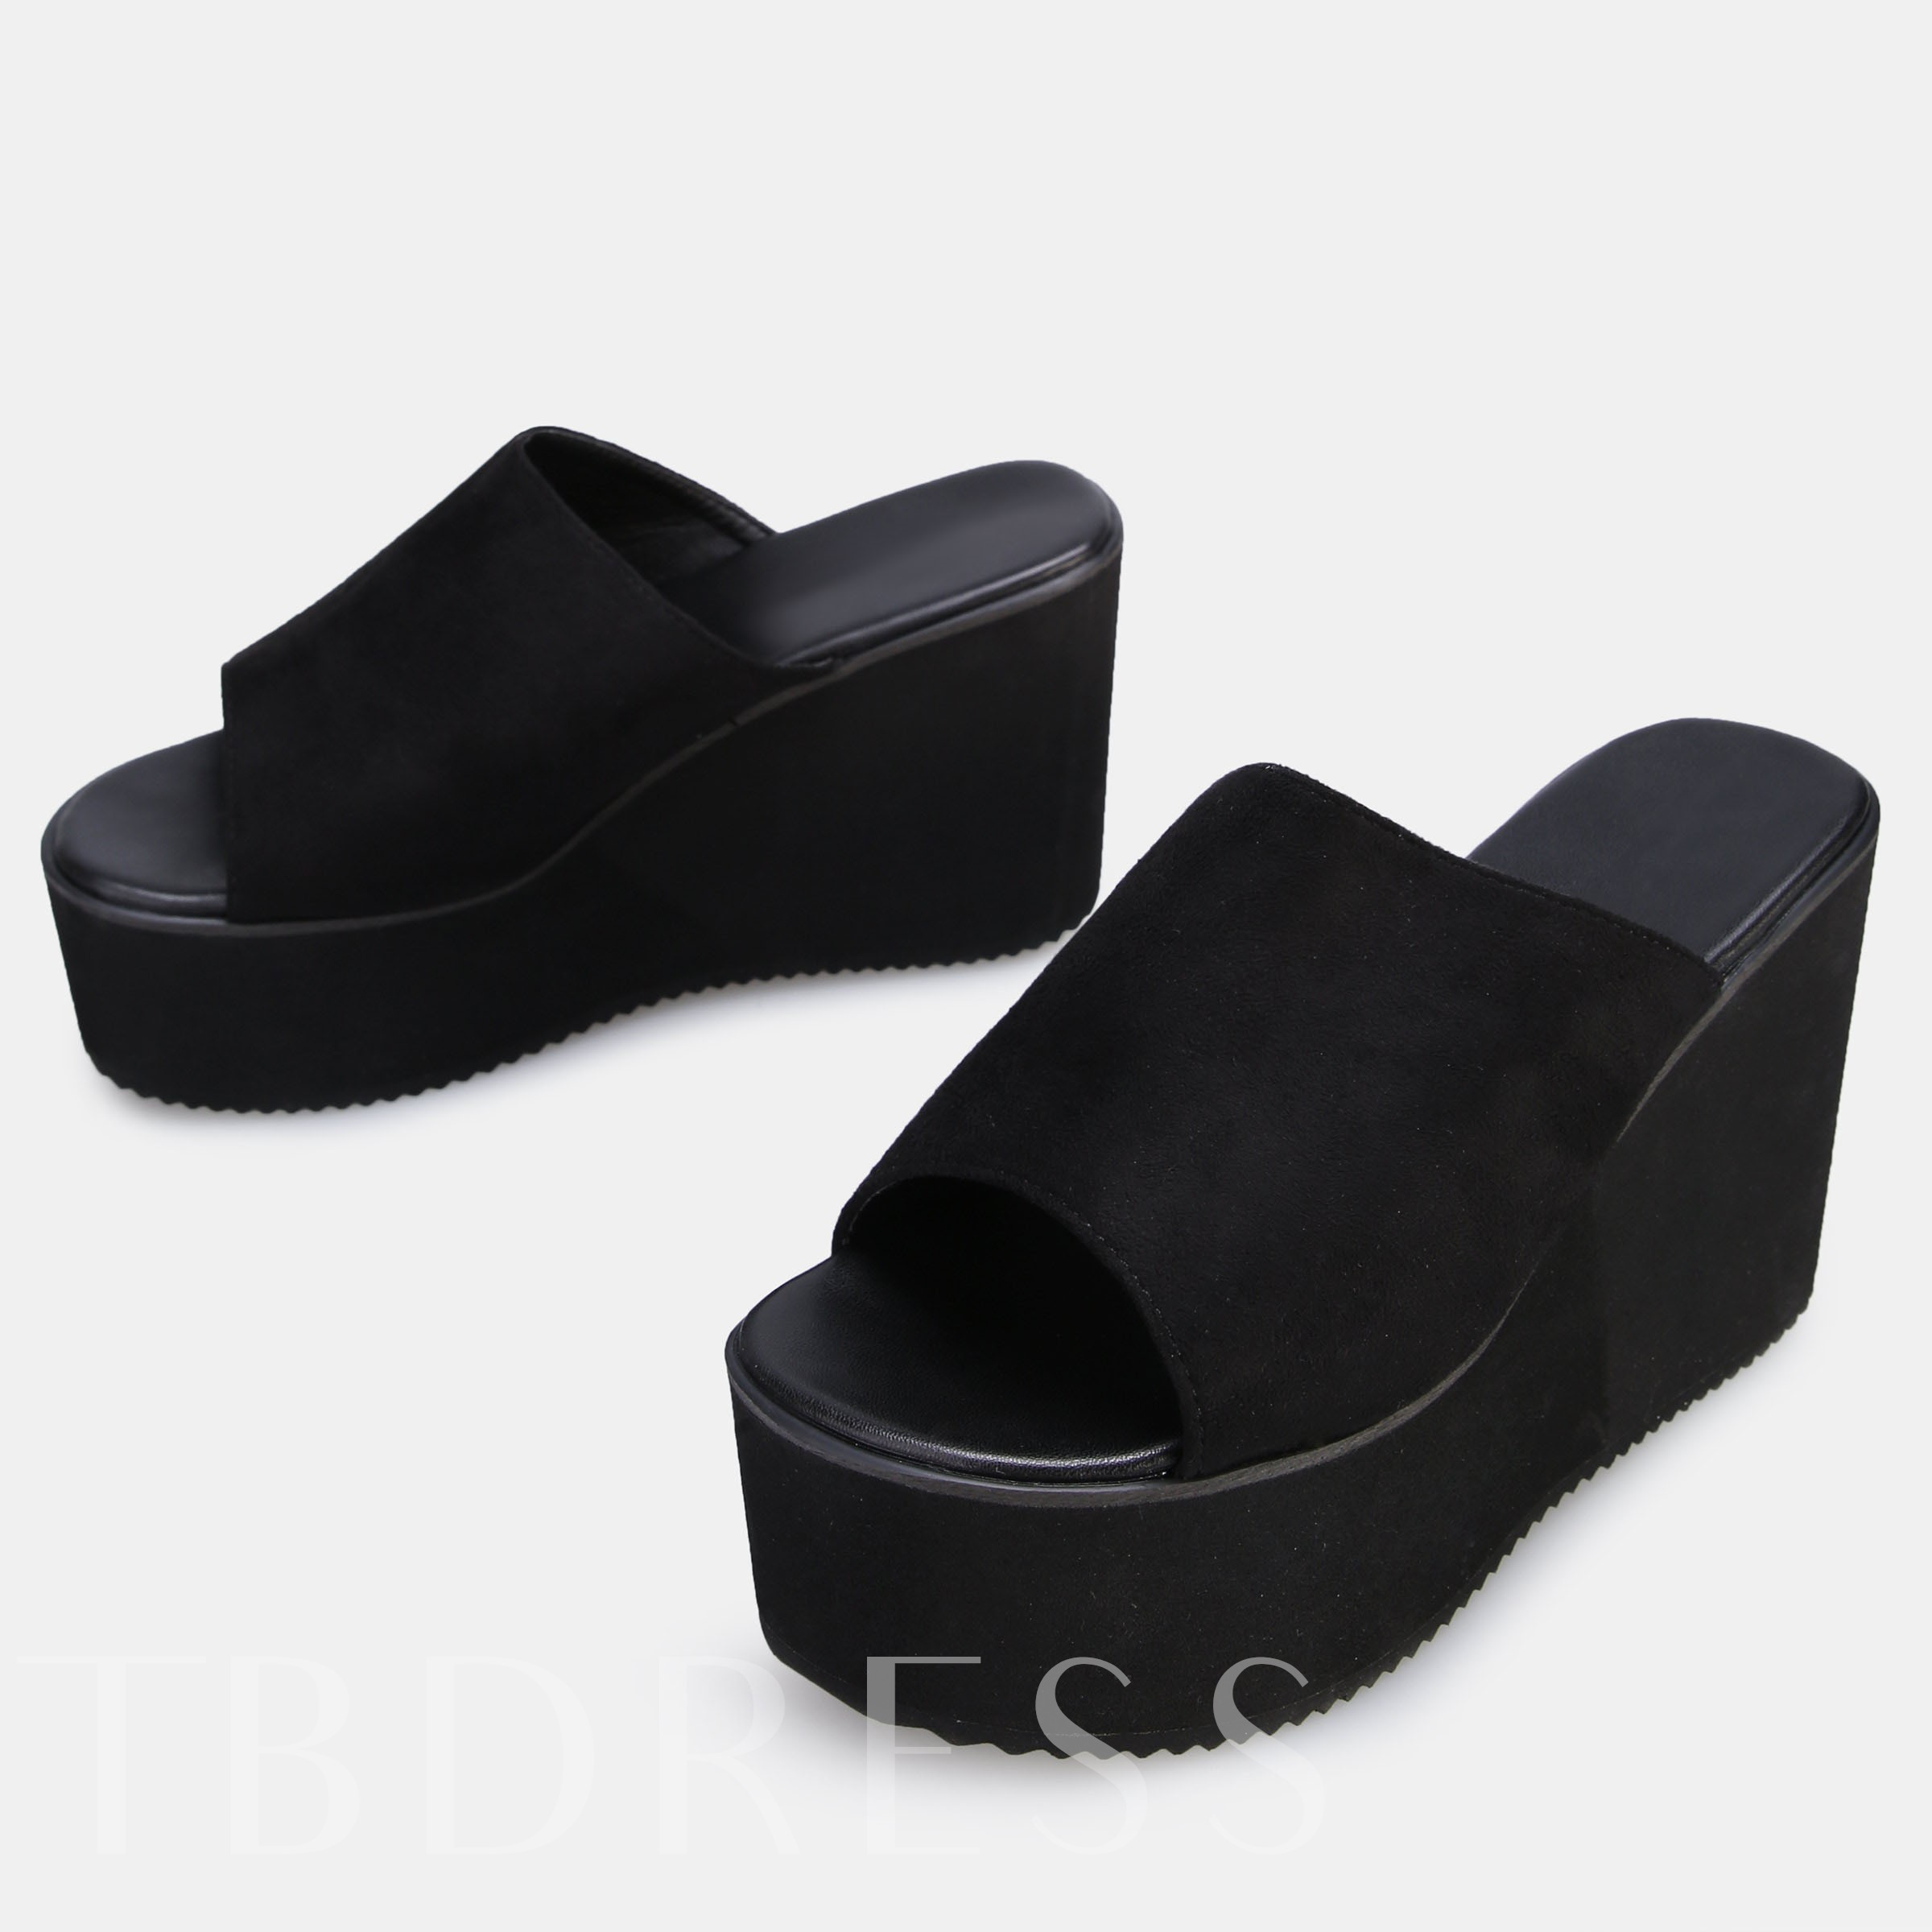 Peep Toe Slip-On Wedge Heel Platform Women's Flat Sandals